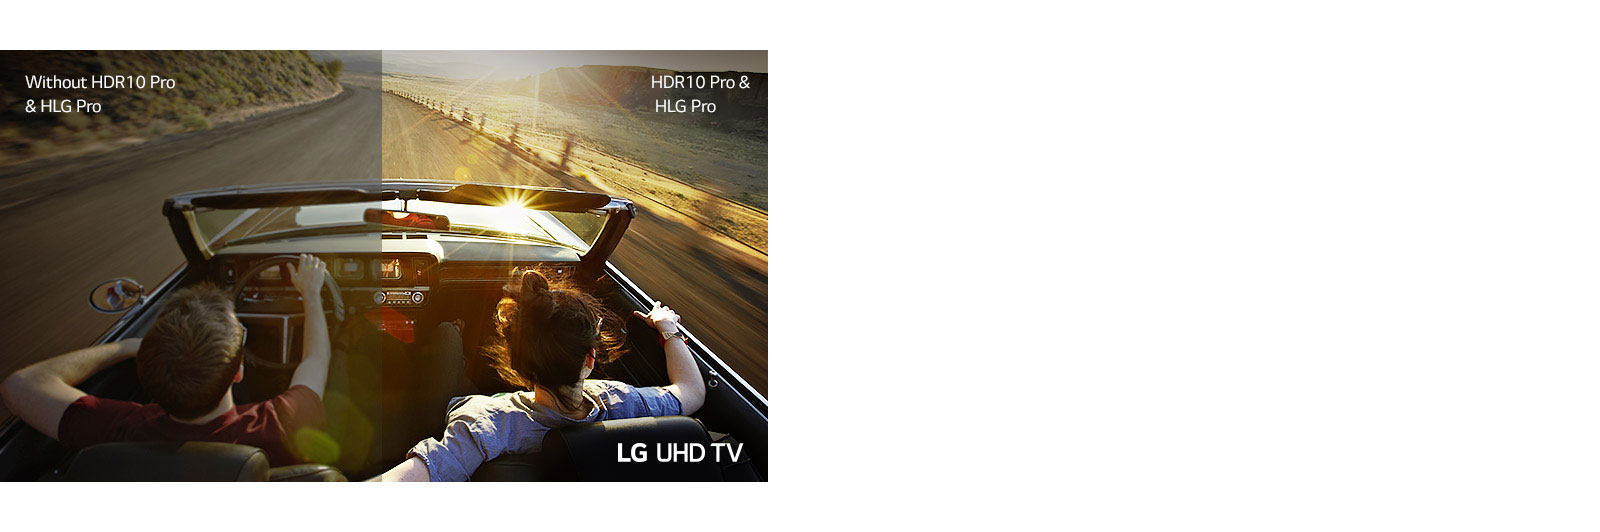 A couple in a car driving down a road. Half is shown on a conventional screen shown with poor picture quality. The other half shown with crisp, vivid LG UHD TV picture quality.